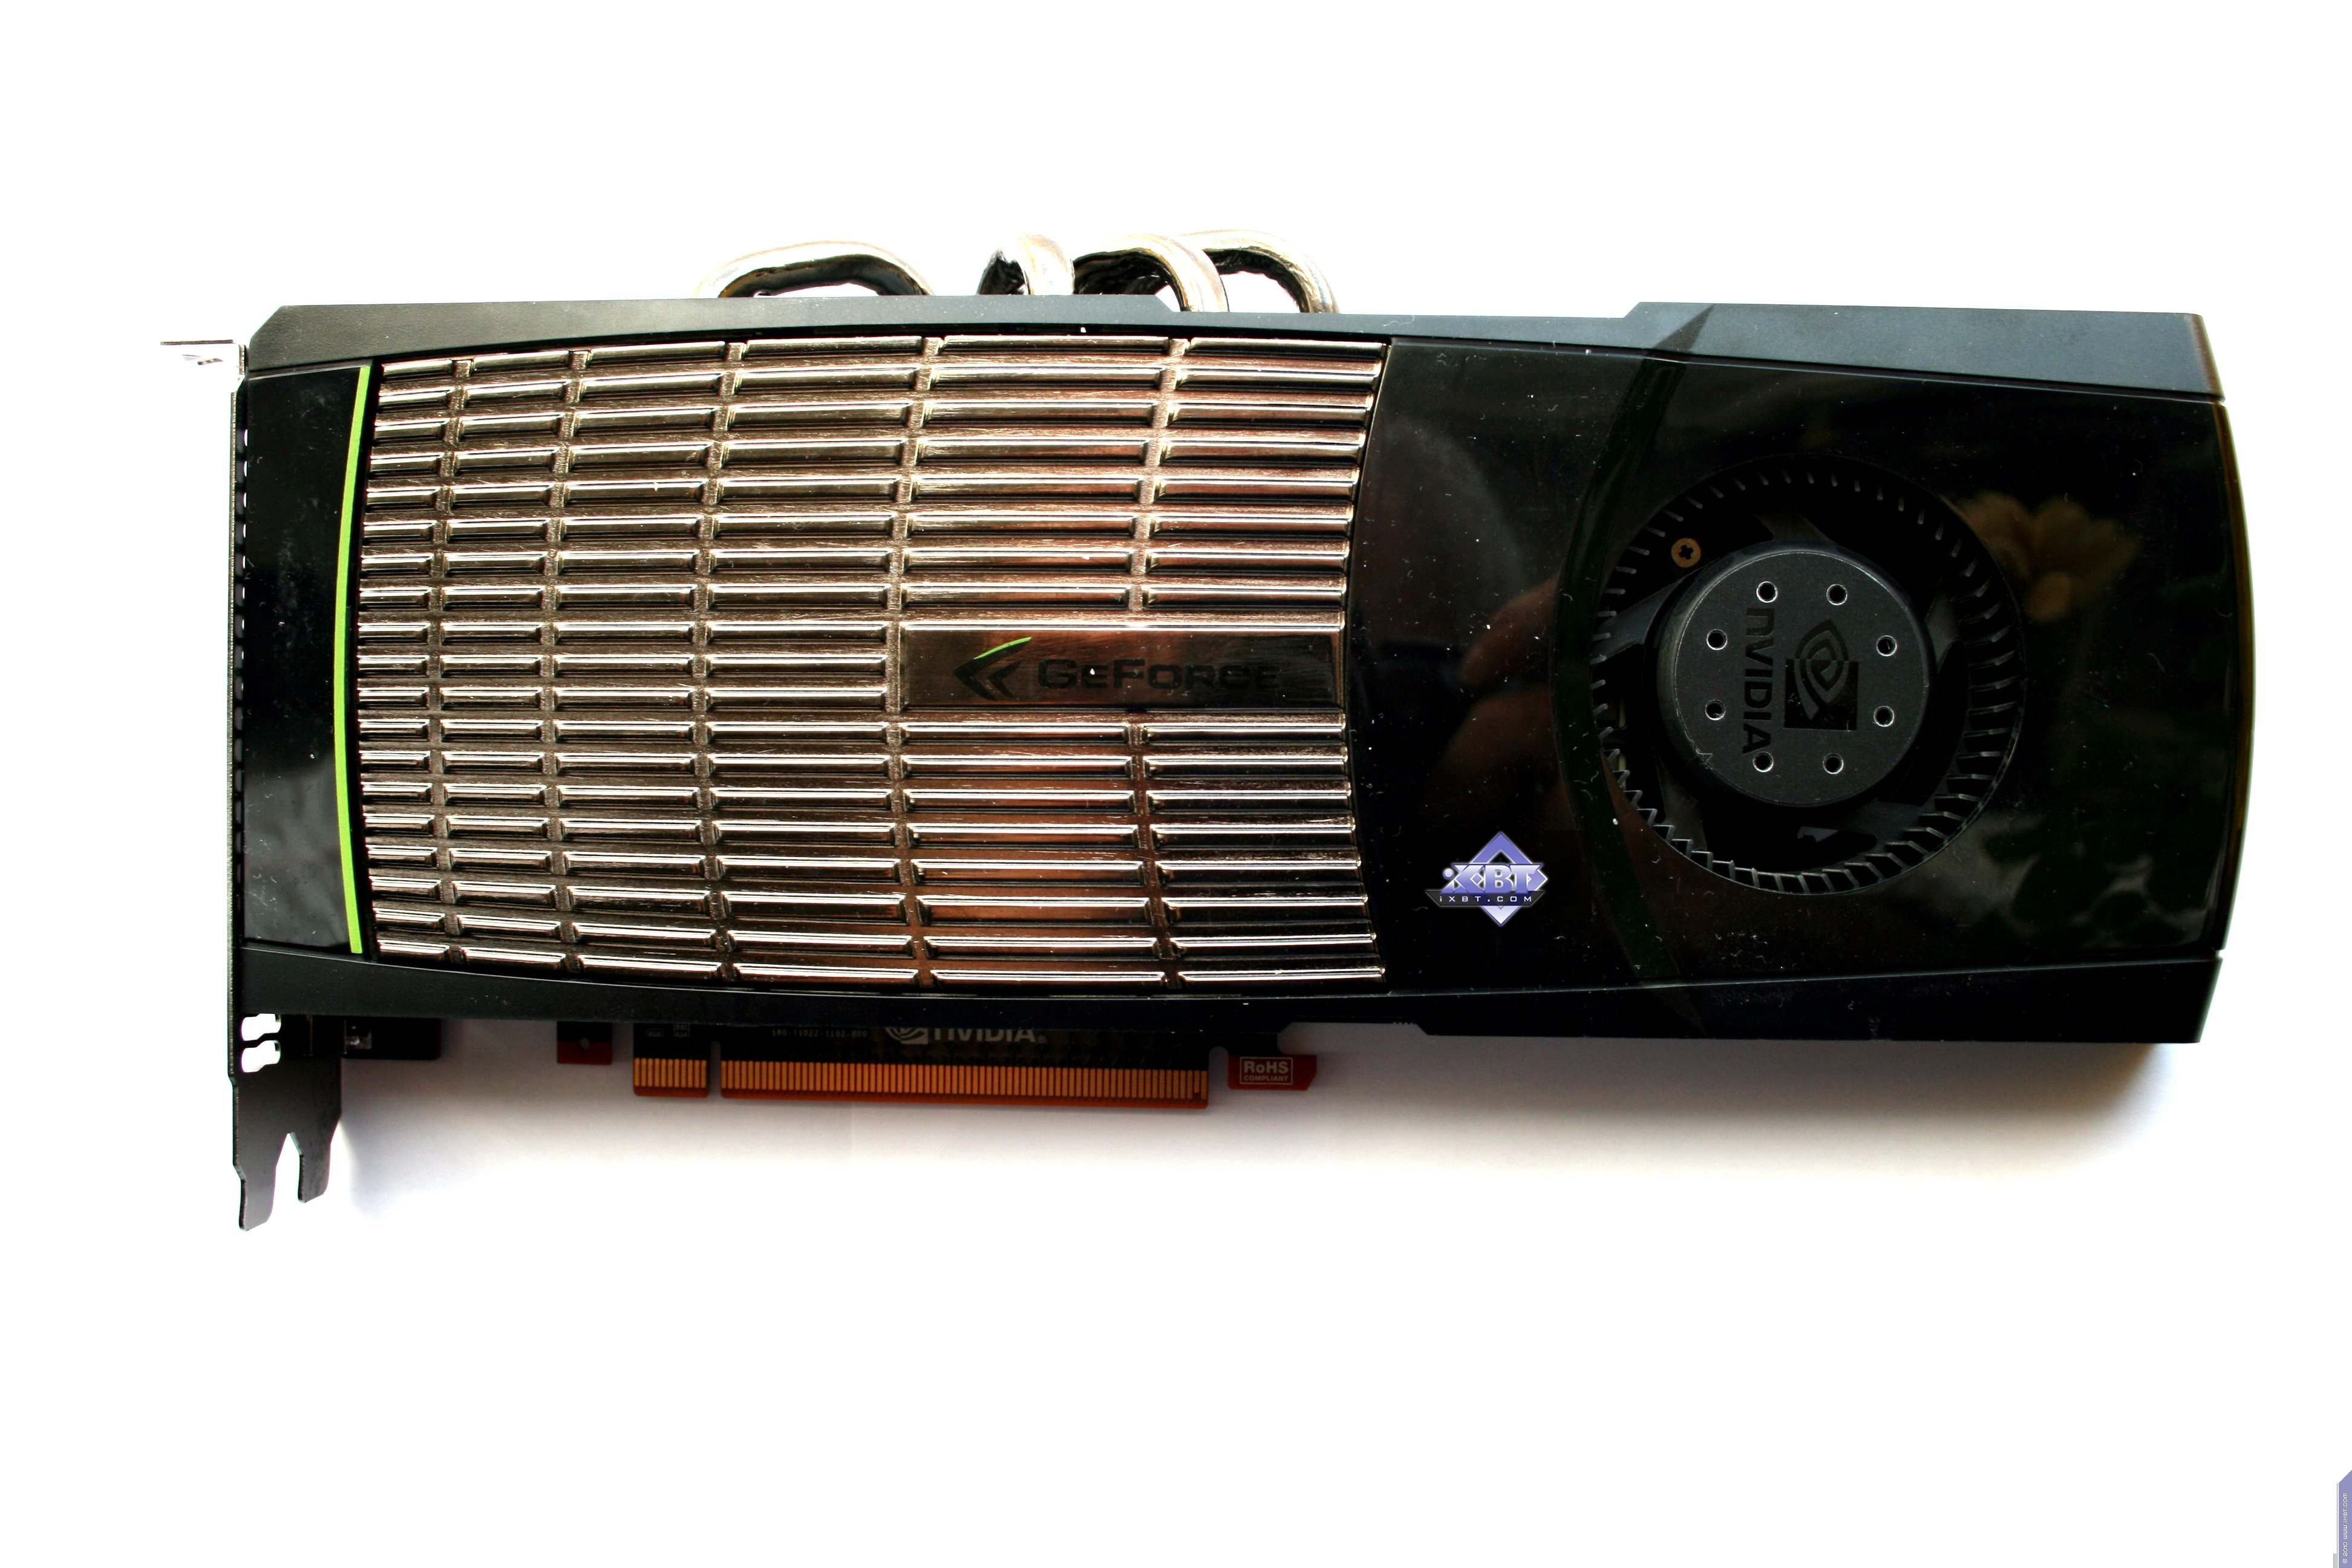 iXBT Labs - NVIDIA GeForce GTX 480 Graphics Card - Page 5: Design, cooling